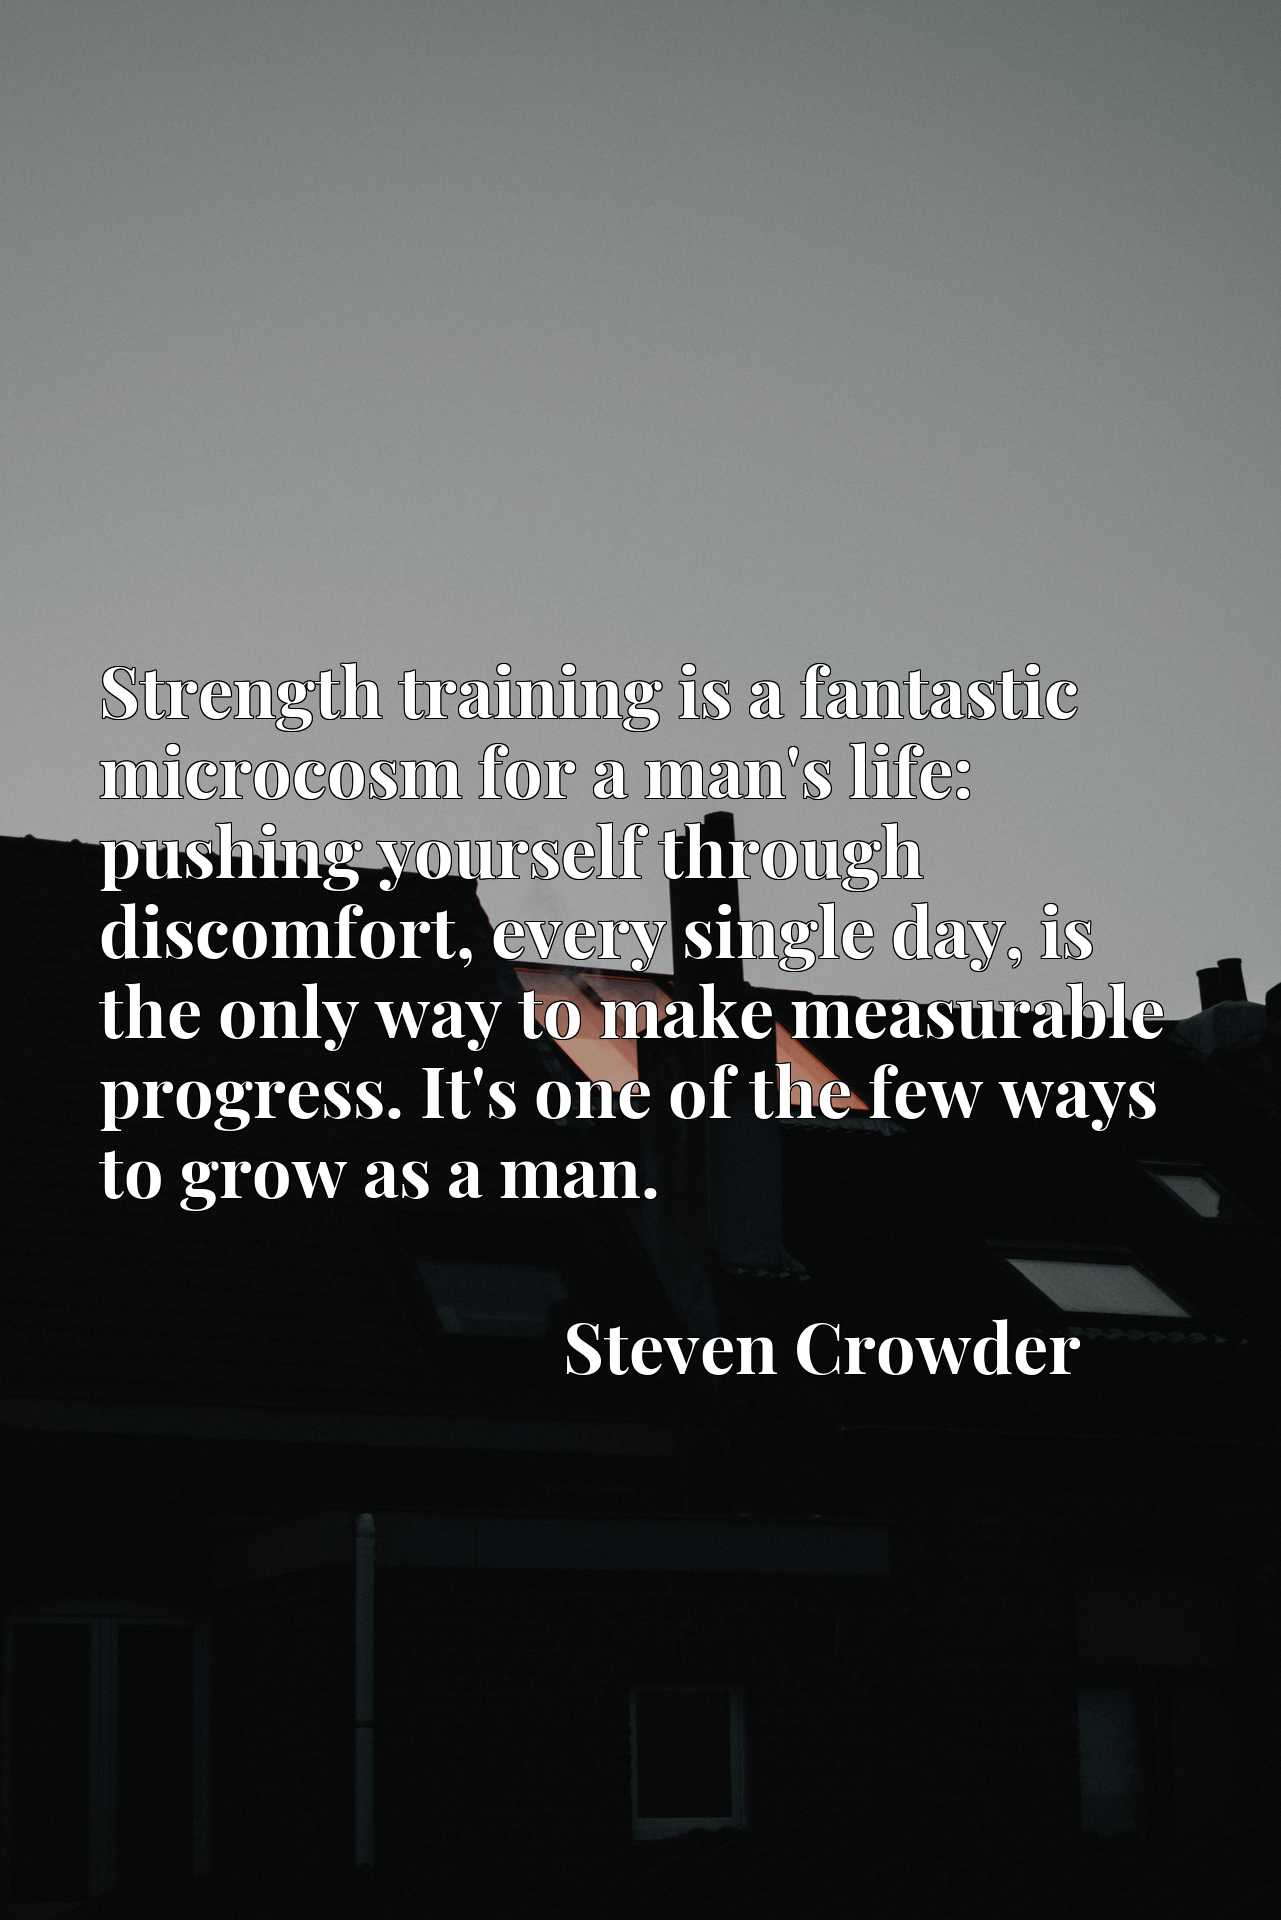 Strength training is a fantastic microcosm for a man's life: pushing yourself through discomfort, every single day, is the only way to make measurable progress. It's one of the few ways to grow as a man.